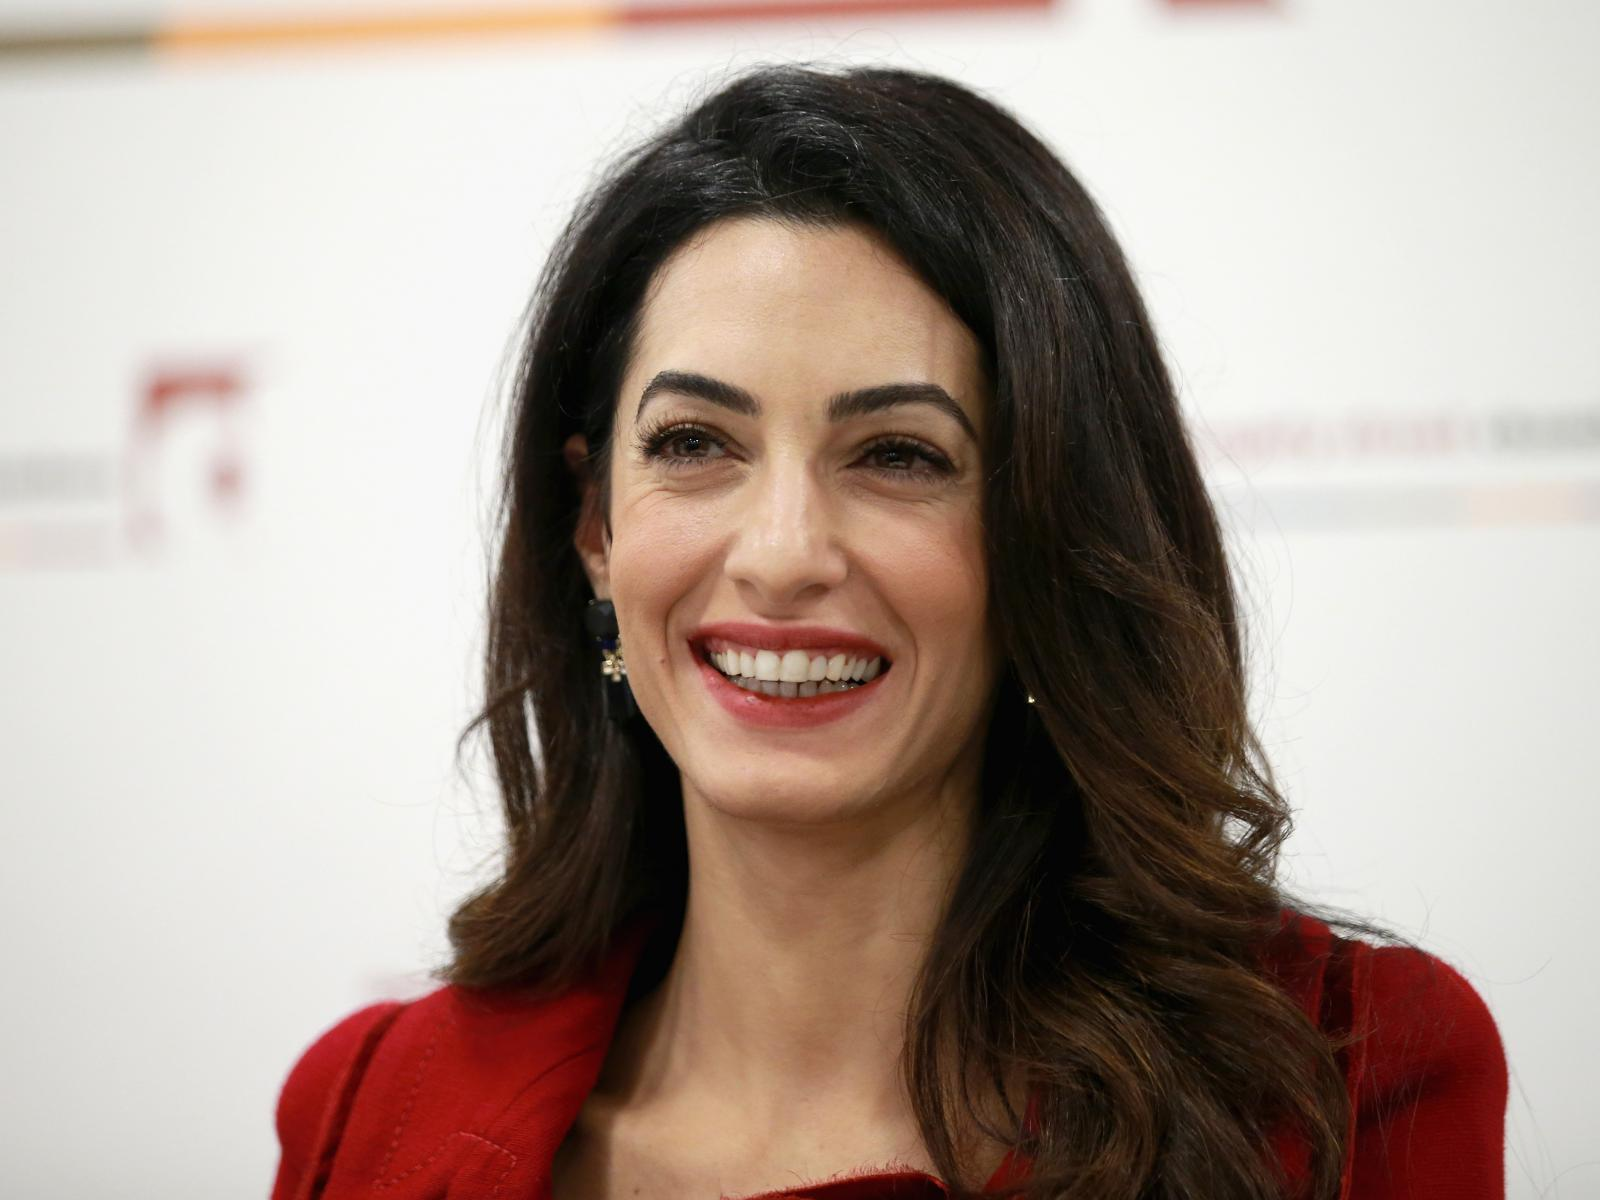 1600x1200 - Amal Clooney Wallpapers 27